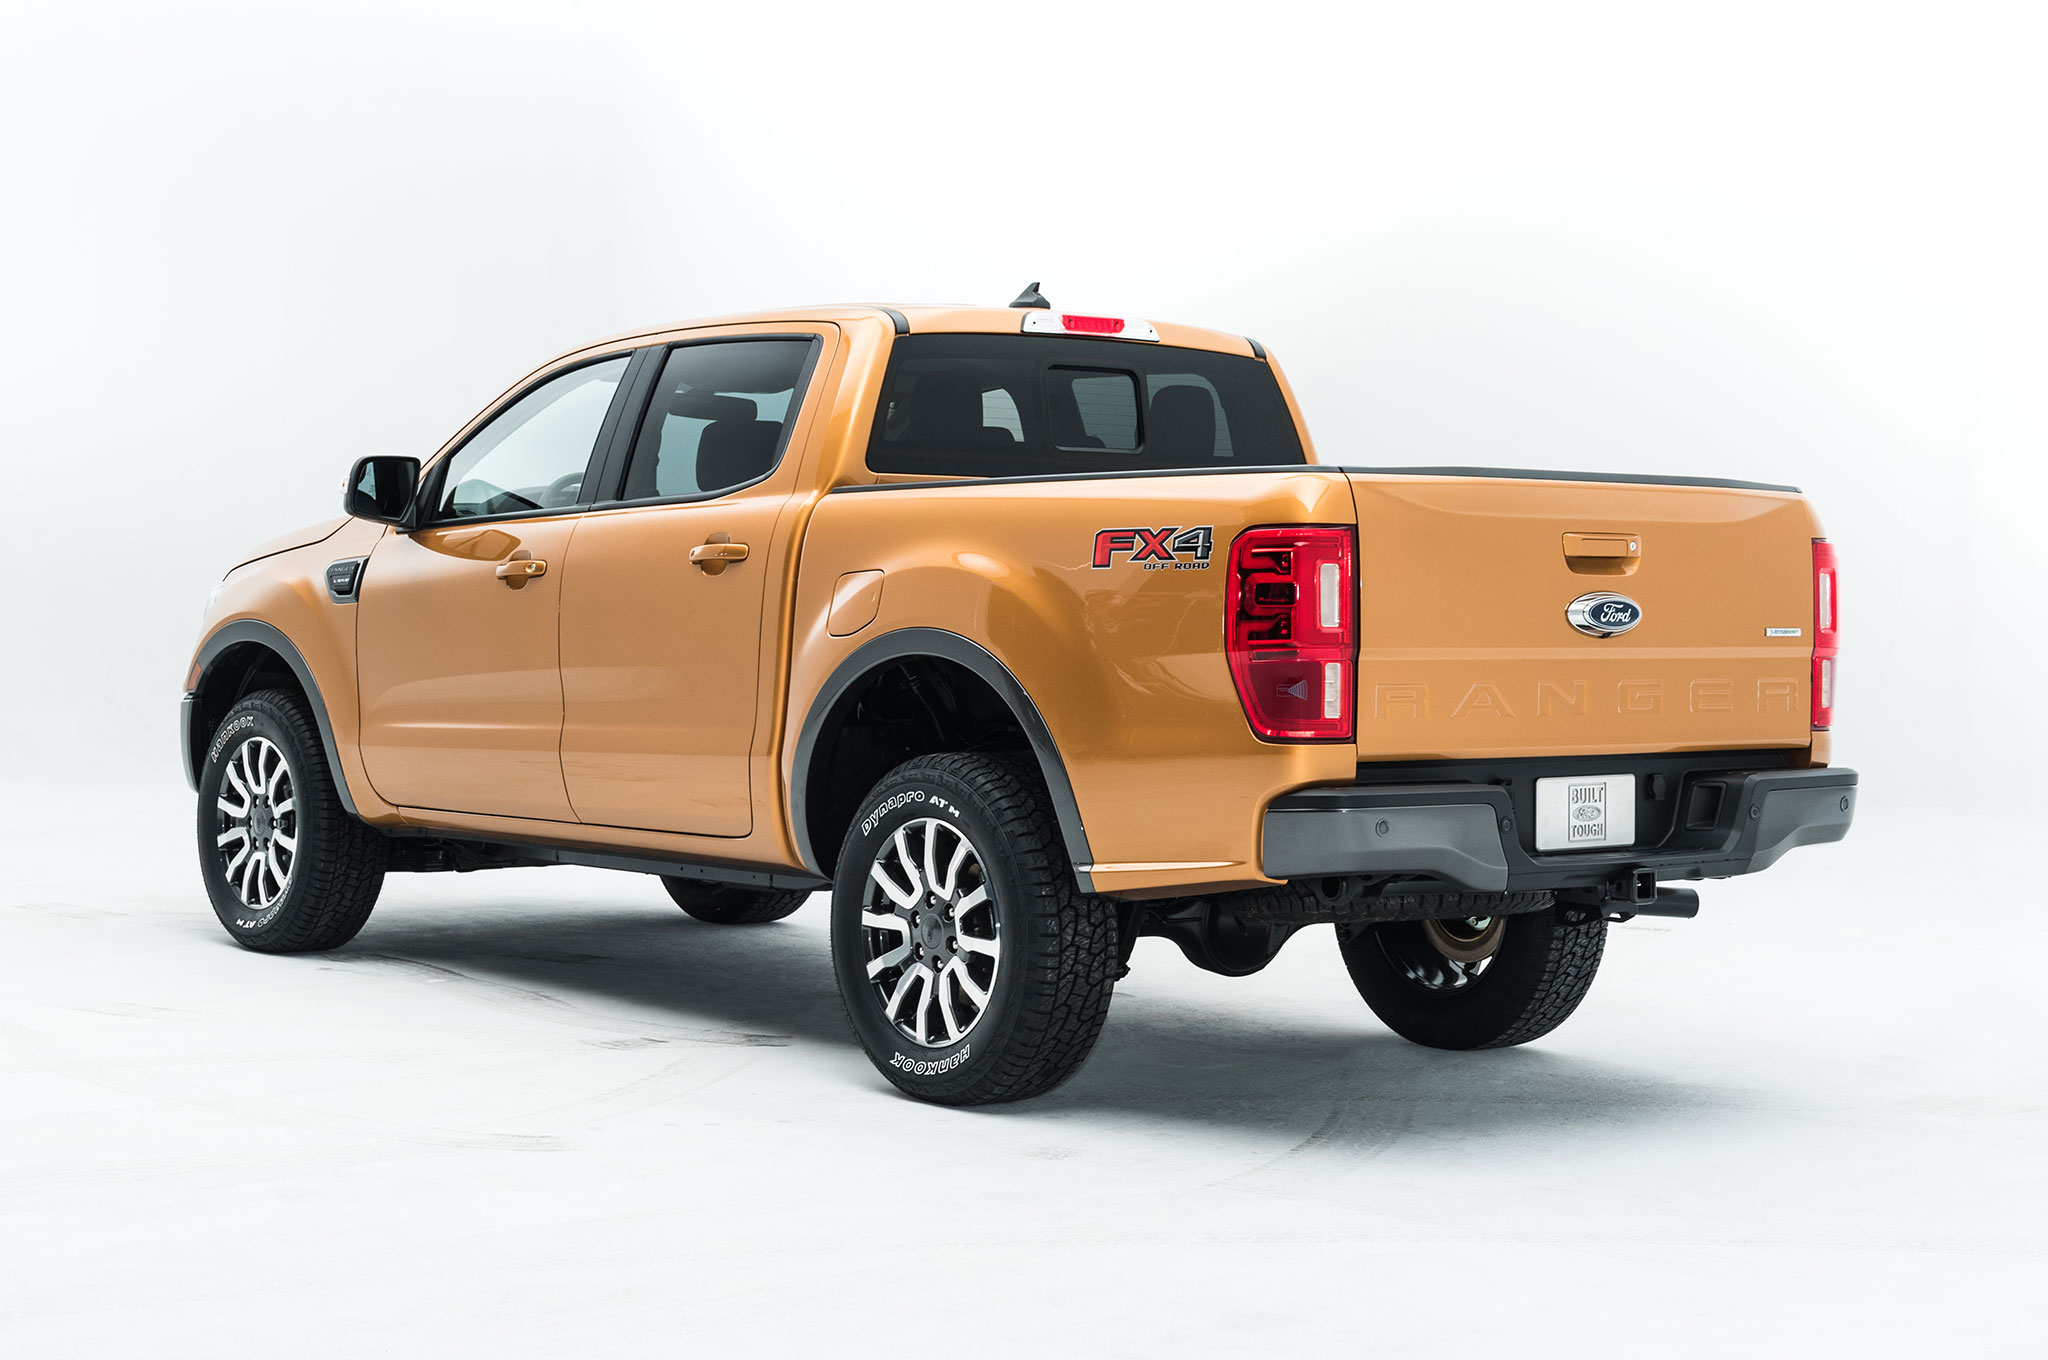 Ford Ranger Production to Begin in Late 2018